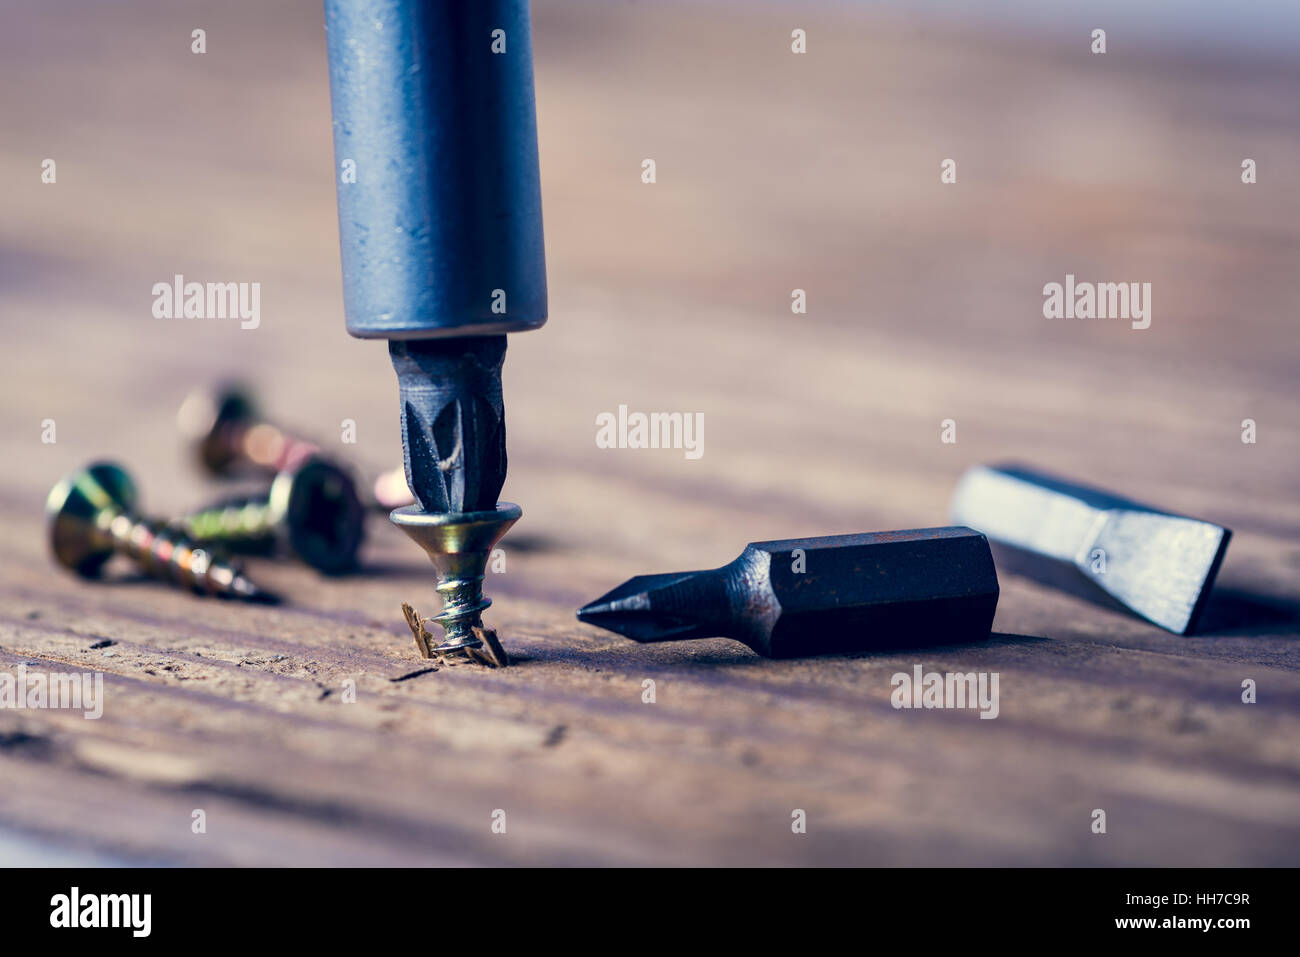 Someone is screwing a screw into wooden surface with the screwdriver. DIY concept. - Stock Image